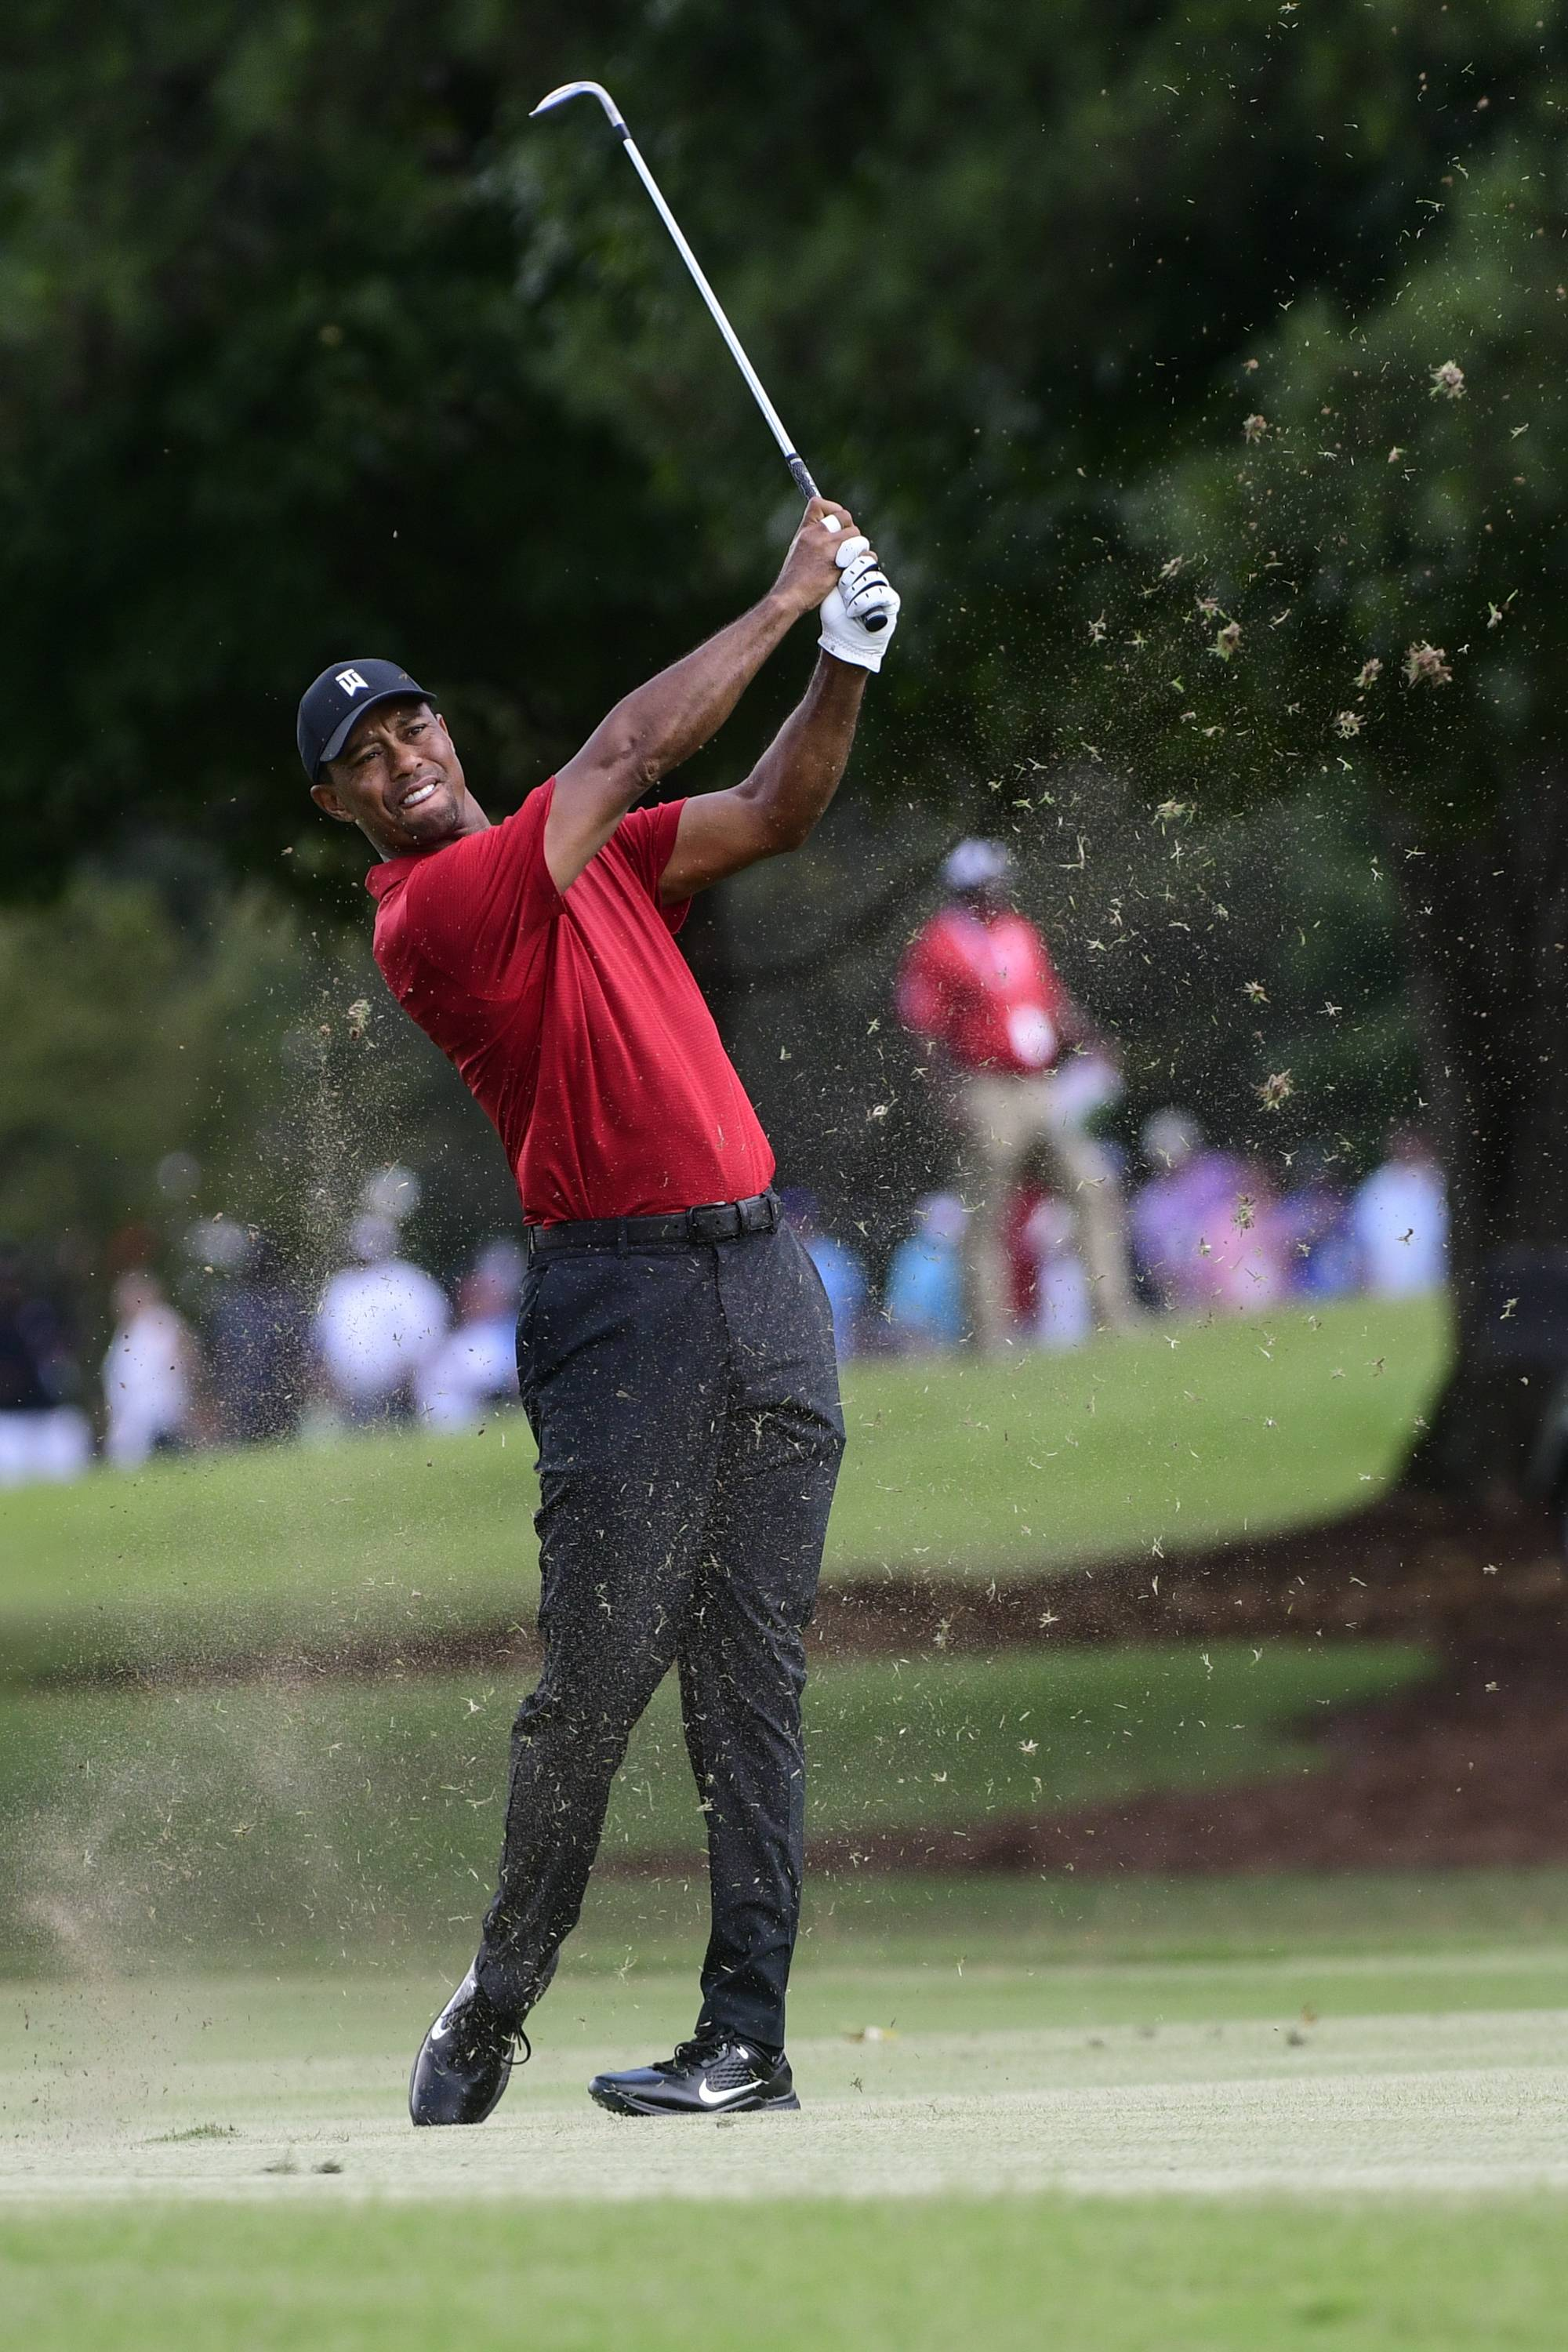 Tiger Woods hits from the third fairway during the final round of the Tour Championship golf tournament Sunday, Sept. 23, 2018, in Atlanta.